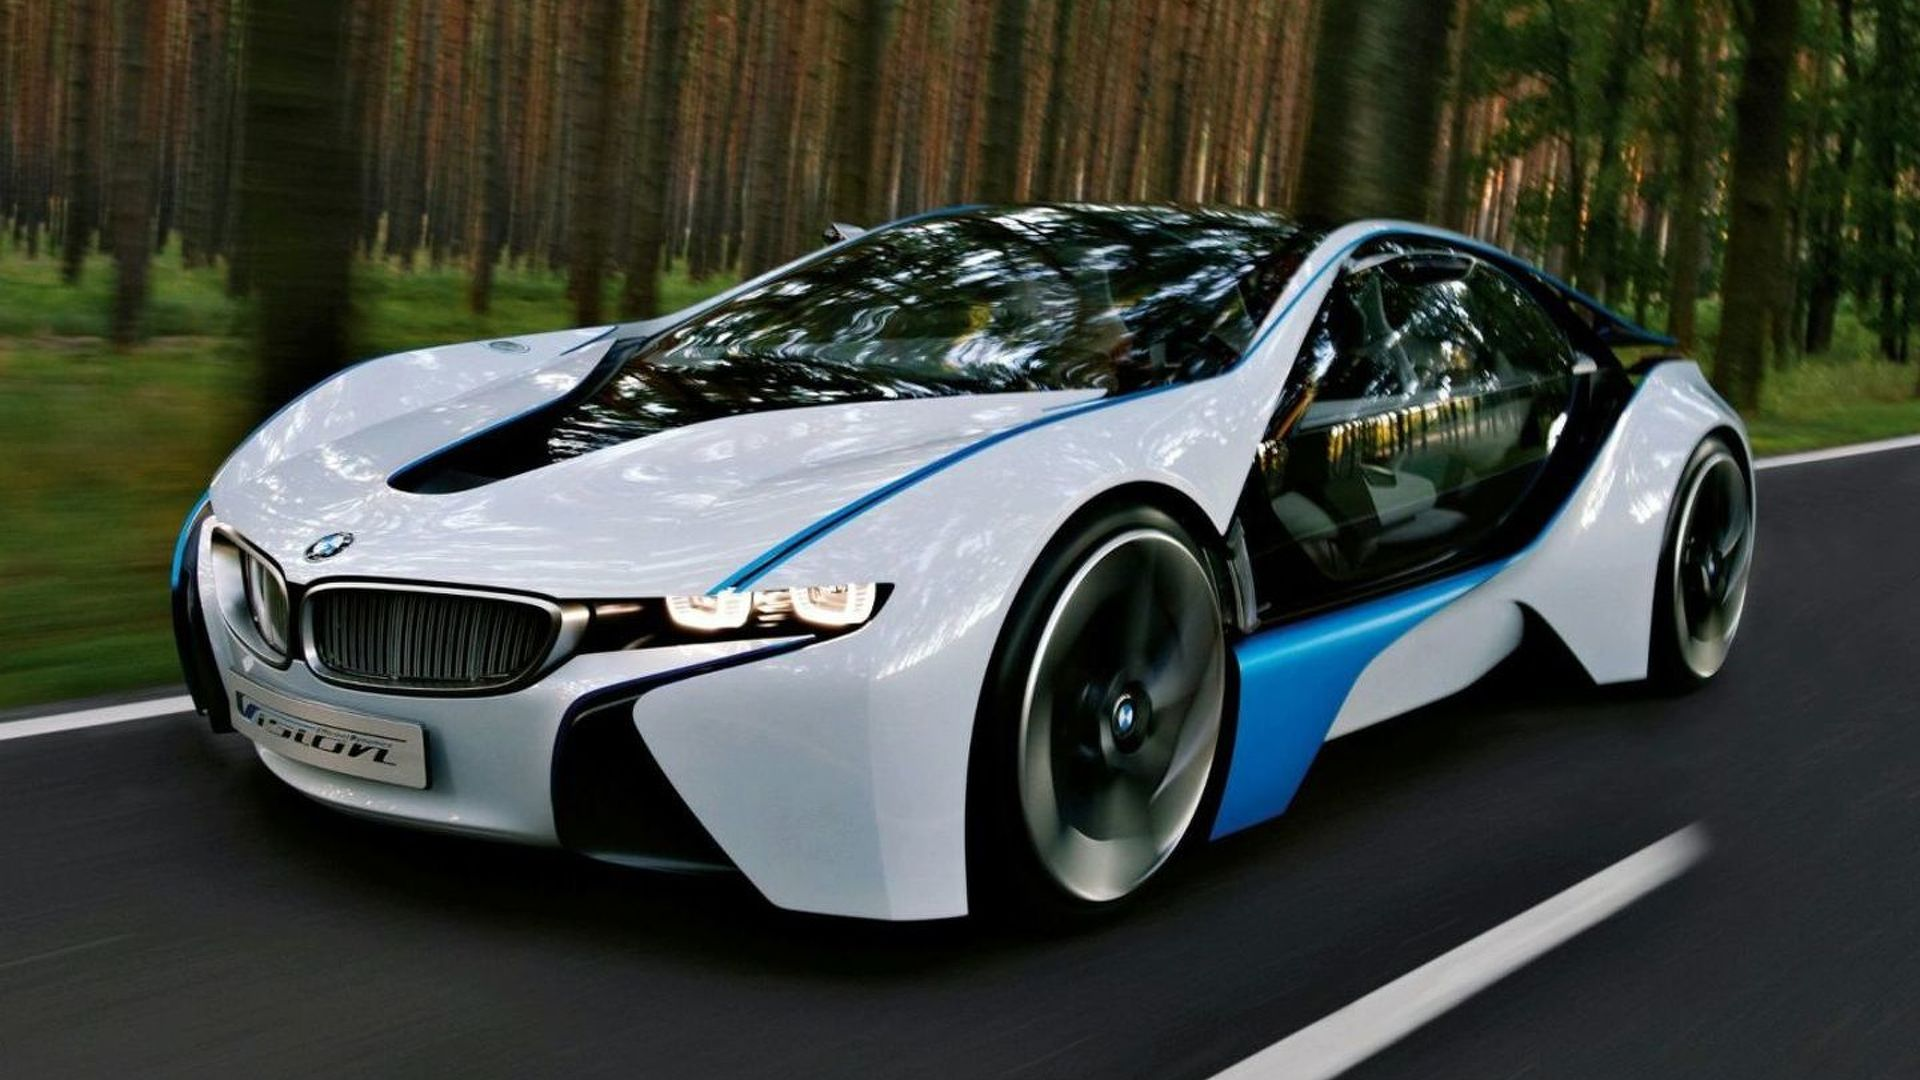 Vision Ed Concept To Give Way To Bmw M8 Hybrid Sports Car